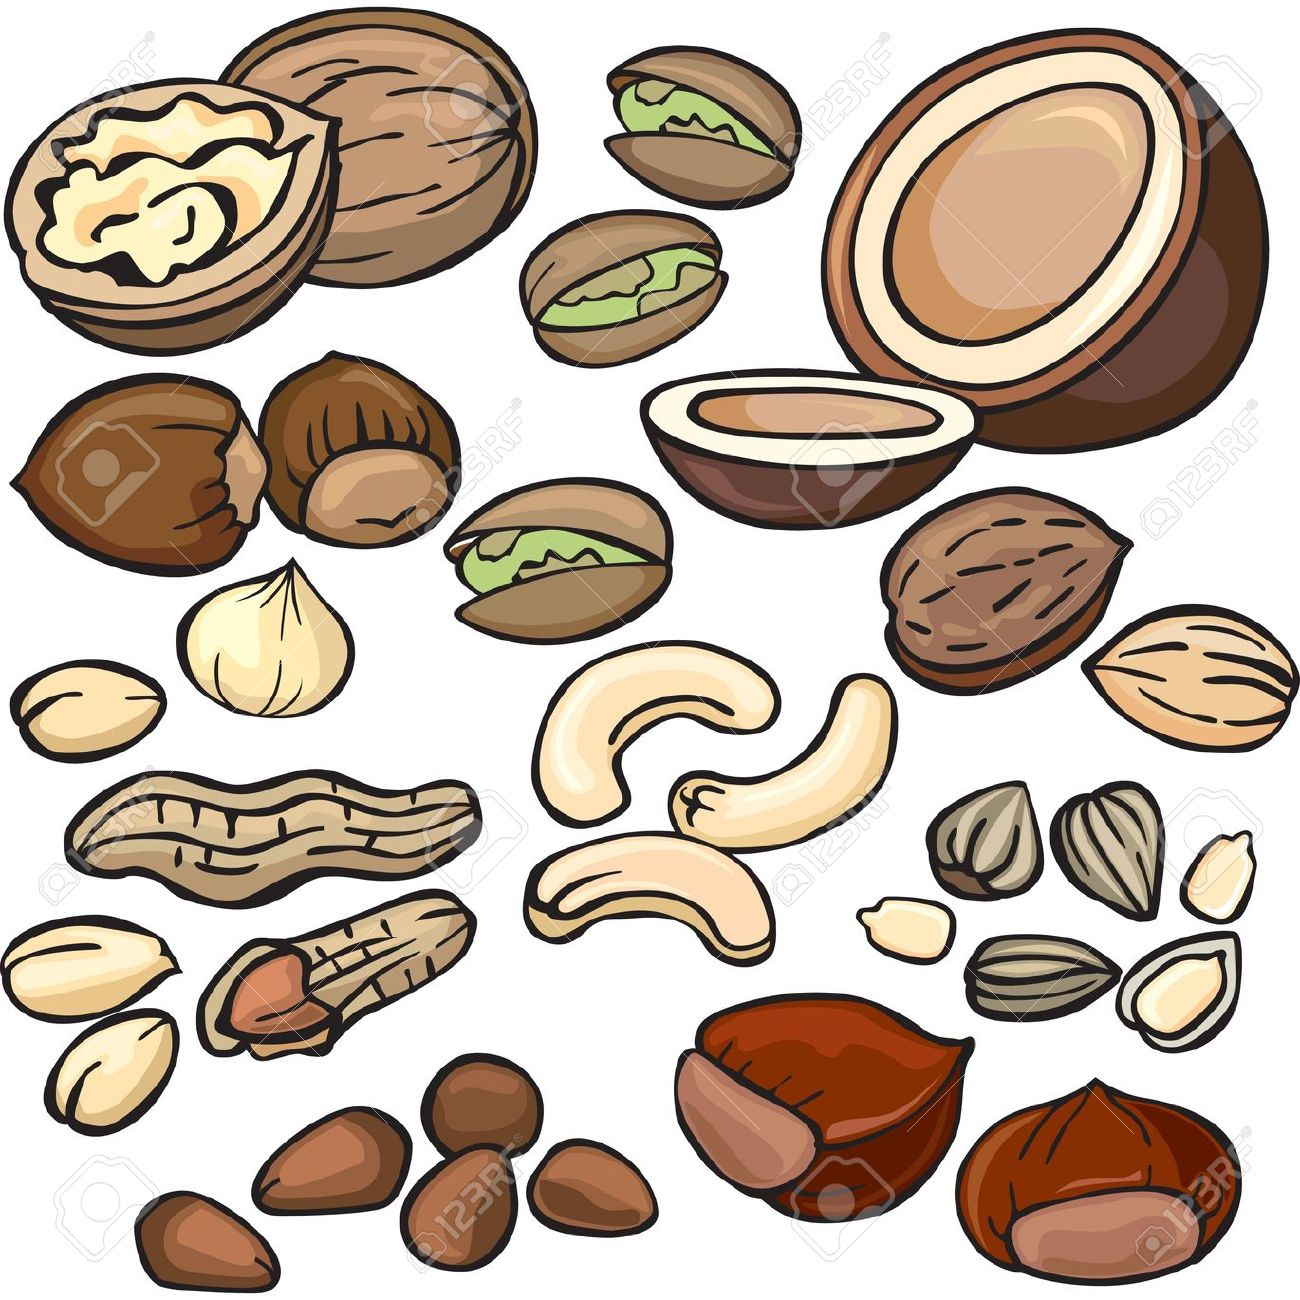 Hazelnut clipart Walnut Clipart Clipart Cliparts collection nuts 293